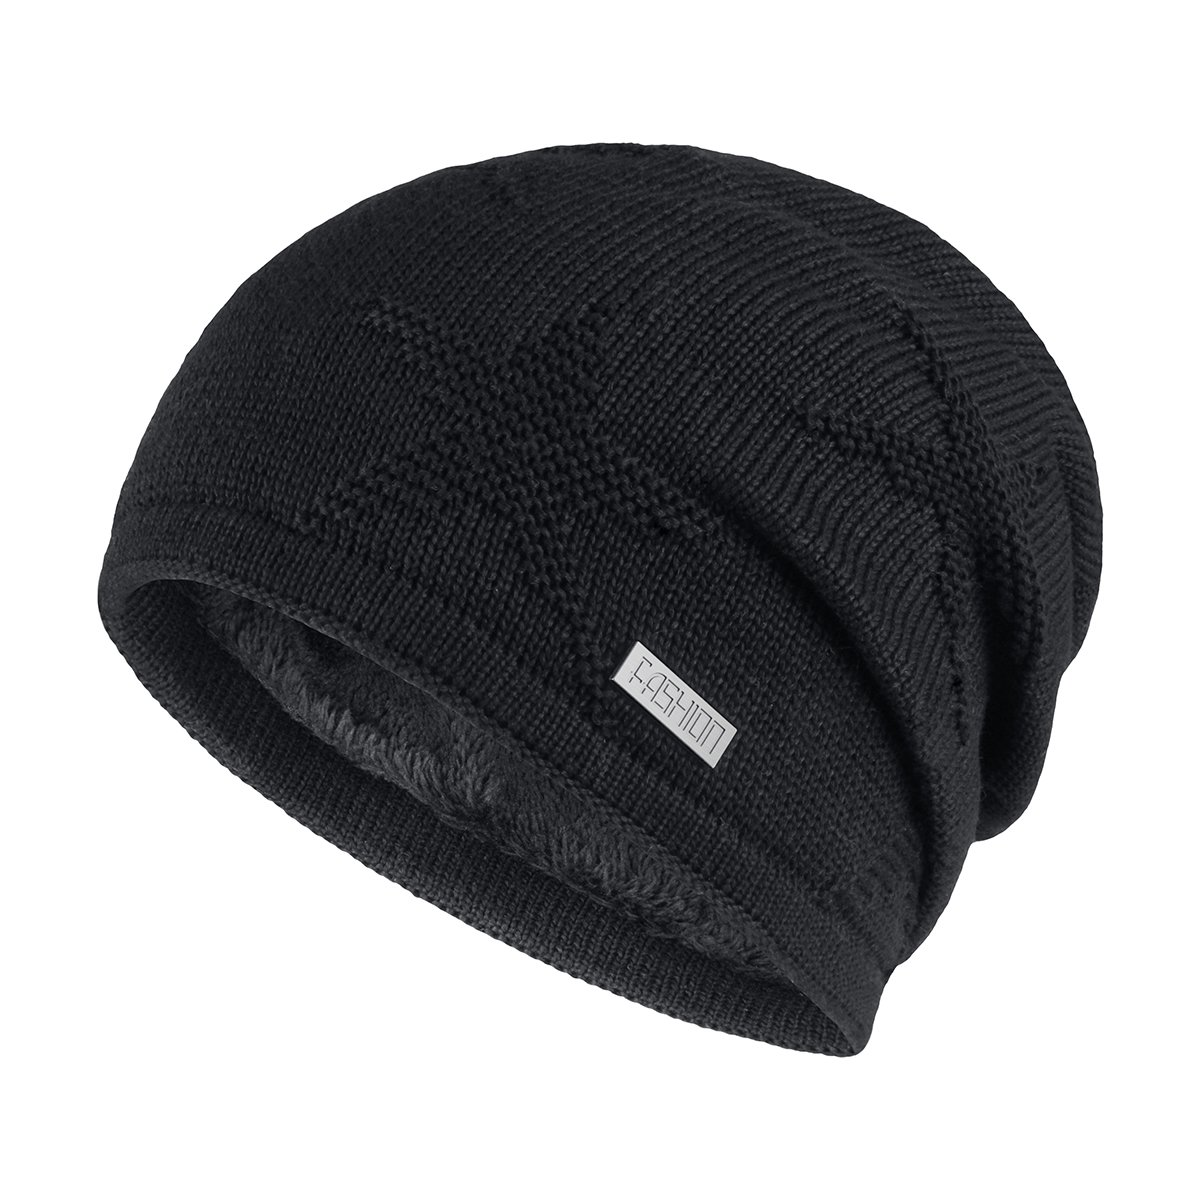 OMECHY Winter Knit Slouchy Beanie Hat Unisex Daily Warm Ski Skull Cap 4 Colors Black